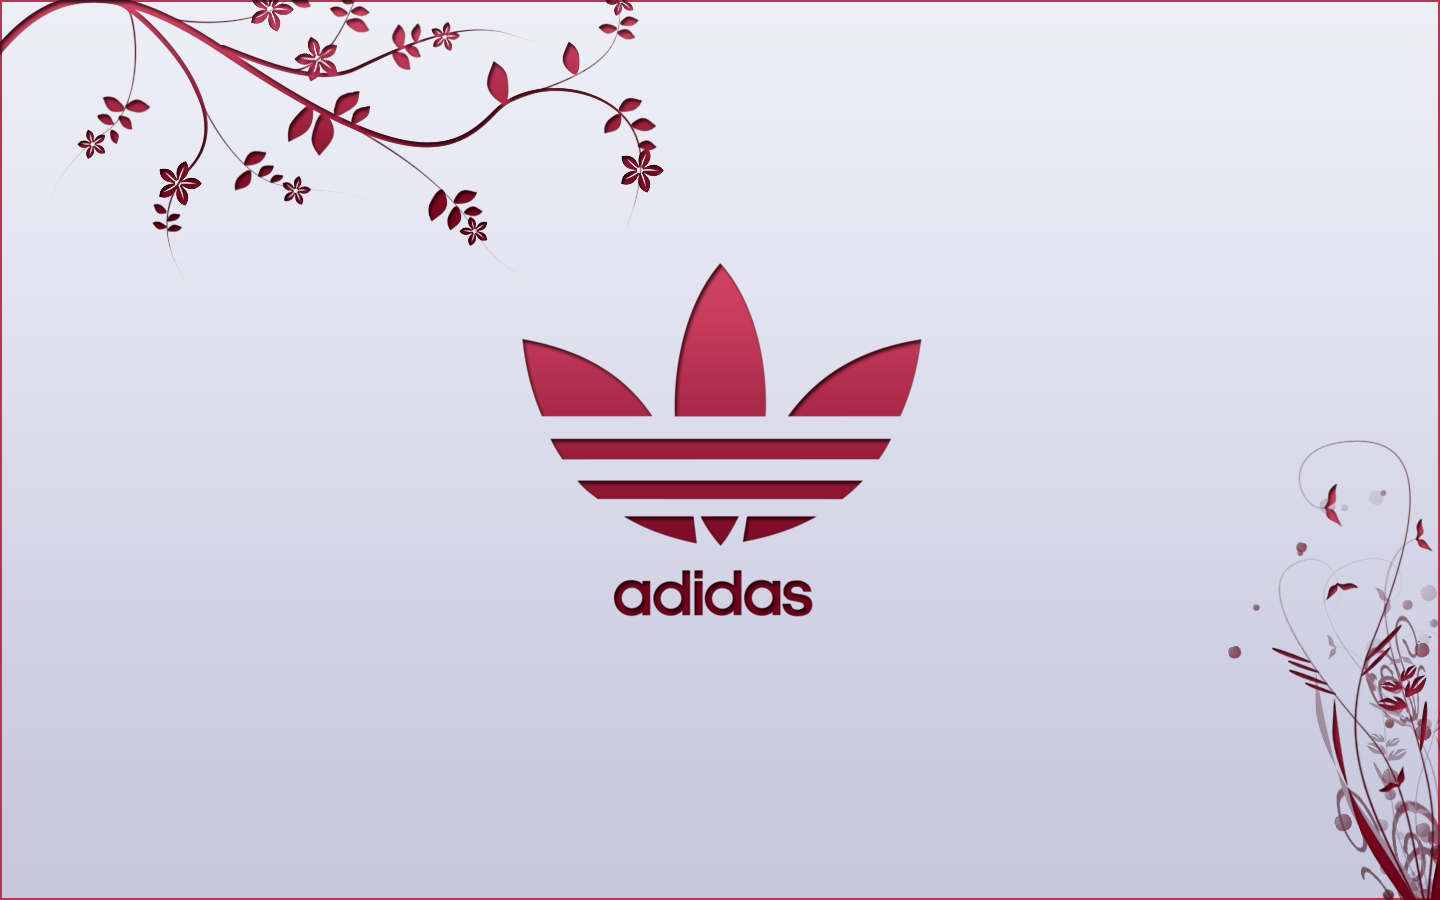 Adidas Desktop | Full HD Pictures: fullhdpictures.com/adidas-logo-hq-wallpapers.html/adidas-desktop